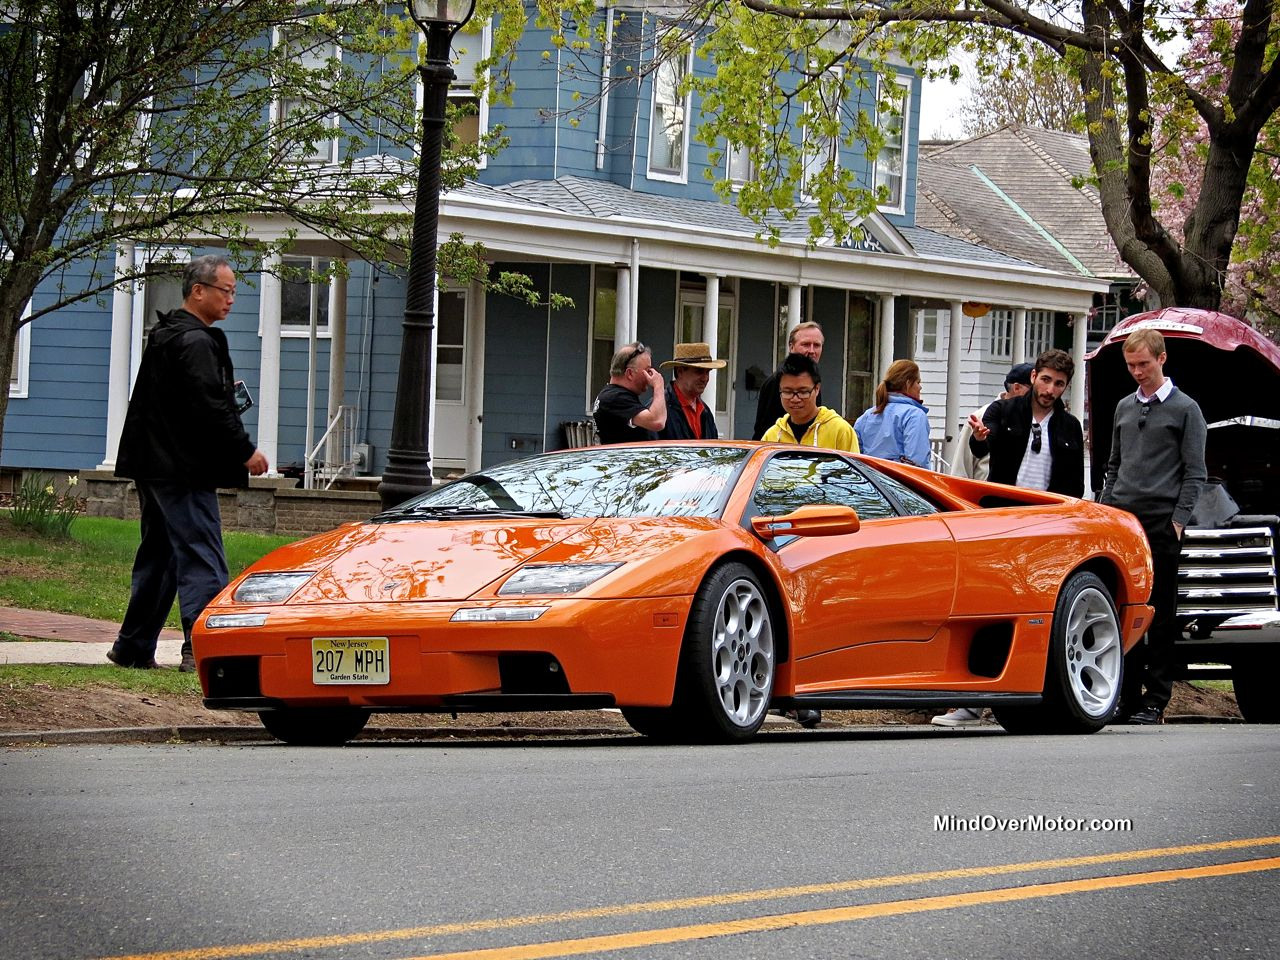 Lamborghini Diablo 6.0 in Hopewell, NJ